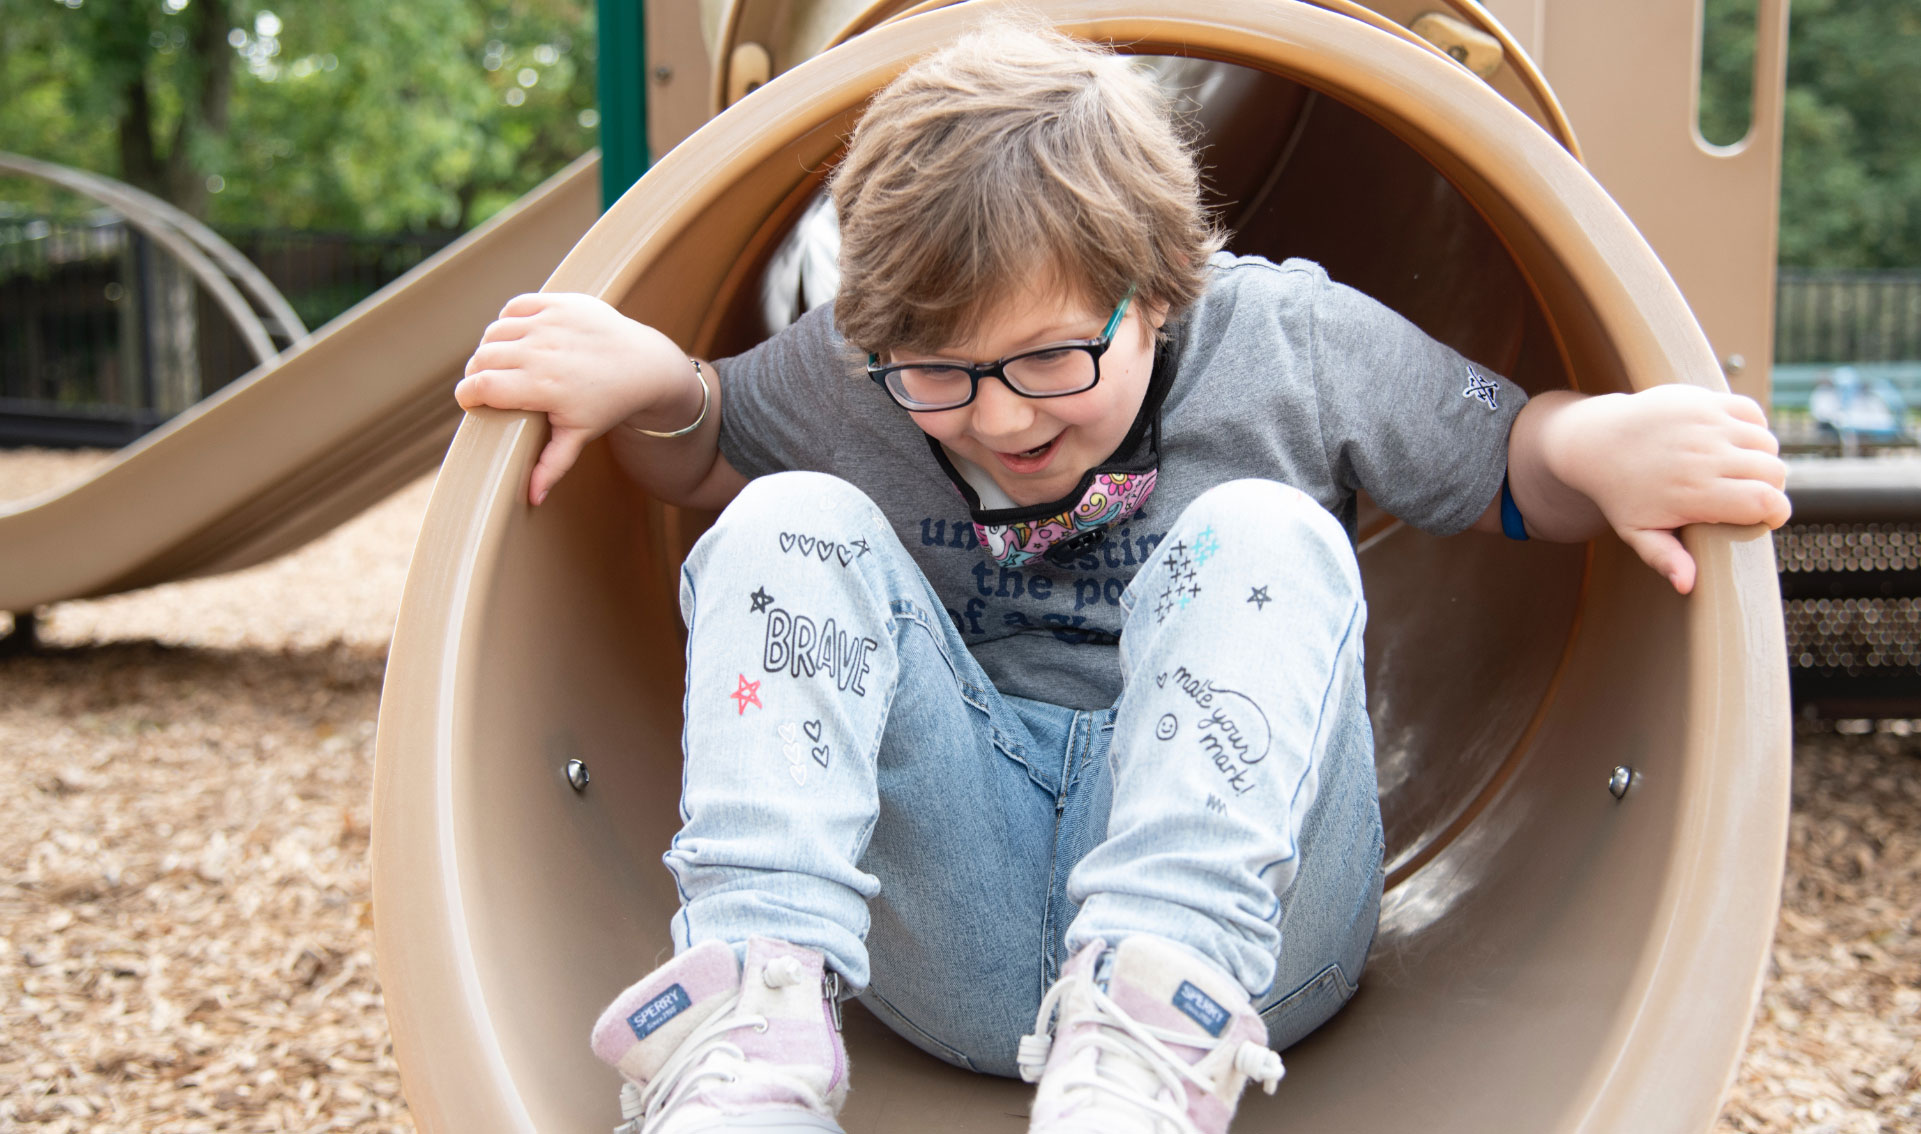 A photo of Ellie at the bottom of a tunnel slide with her hands grabbing the outside of the slide while she enthusiastically smiles. She is wearing a gray t-shirt, jeans, and light pink sneakers.